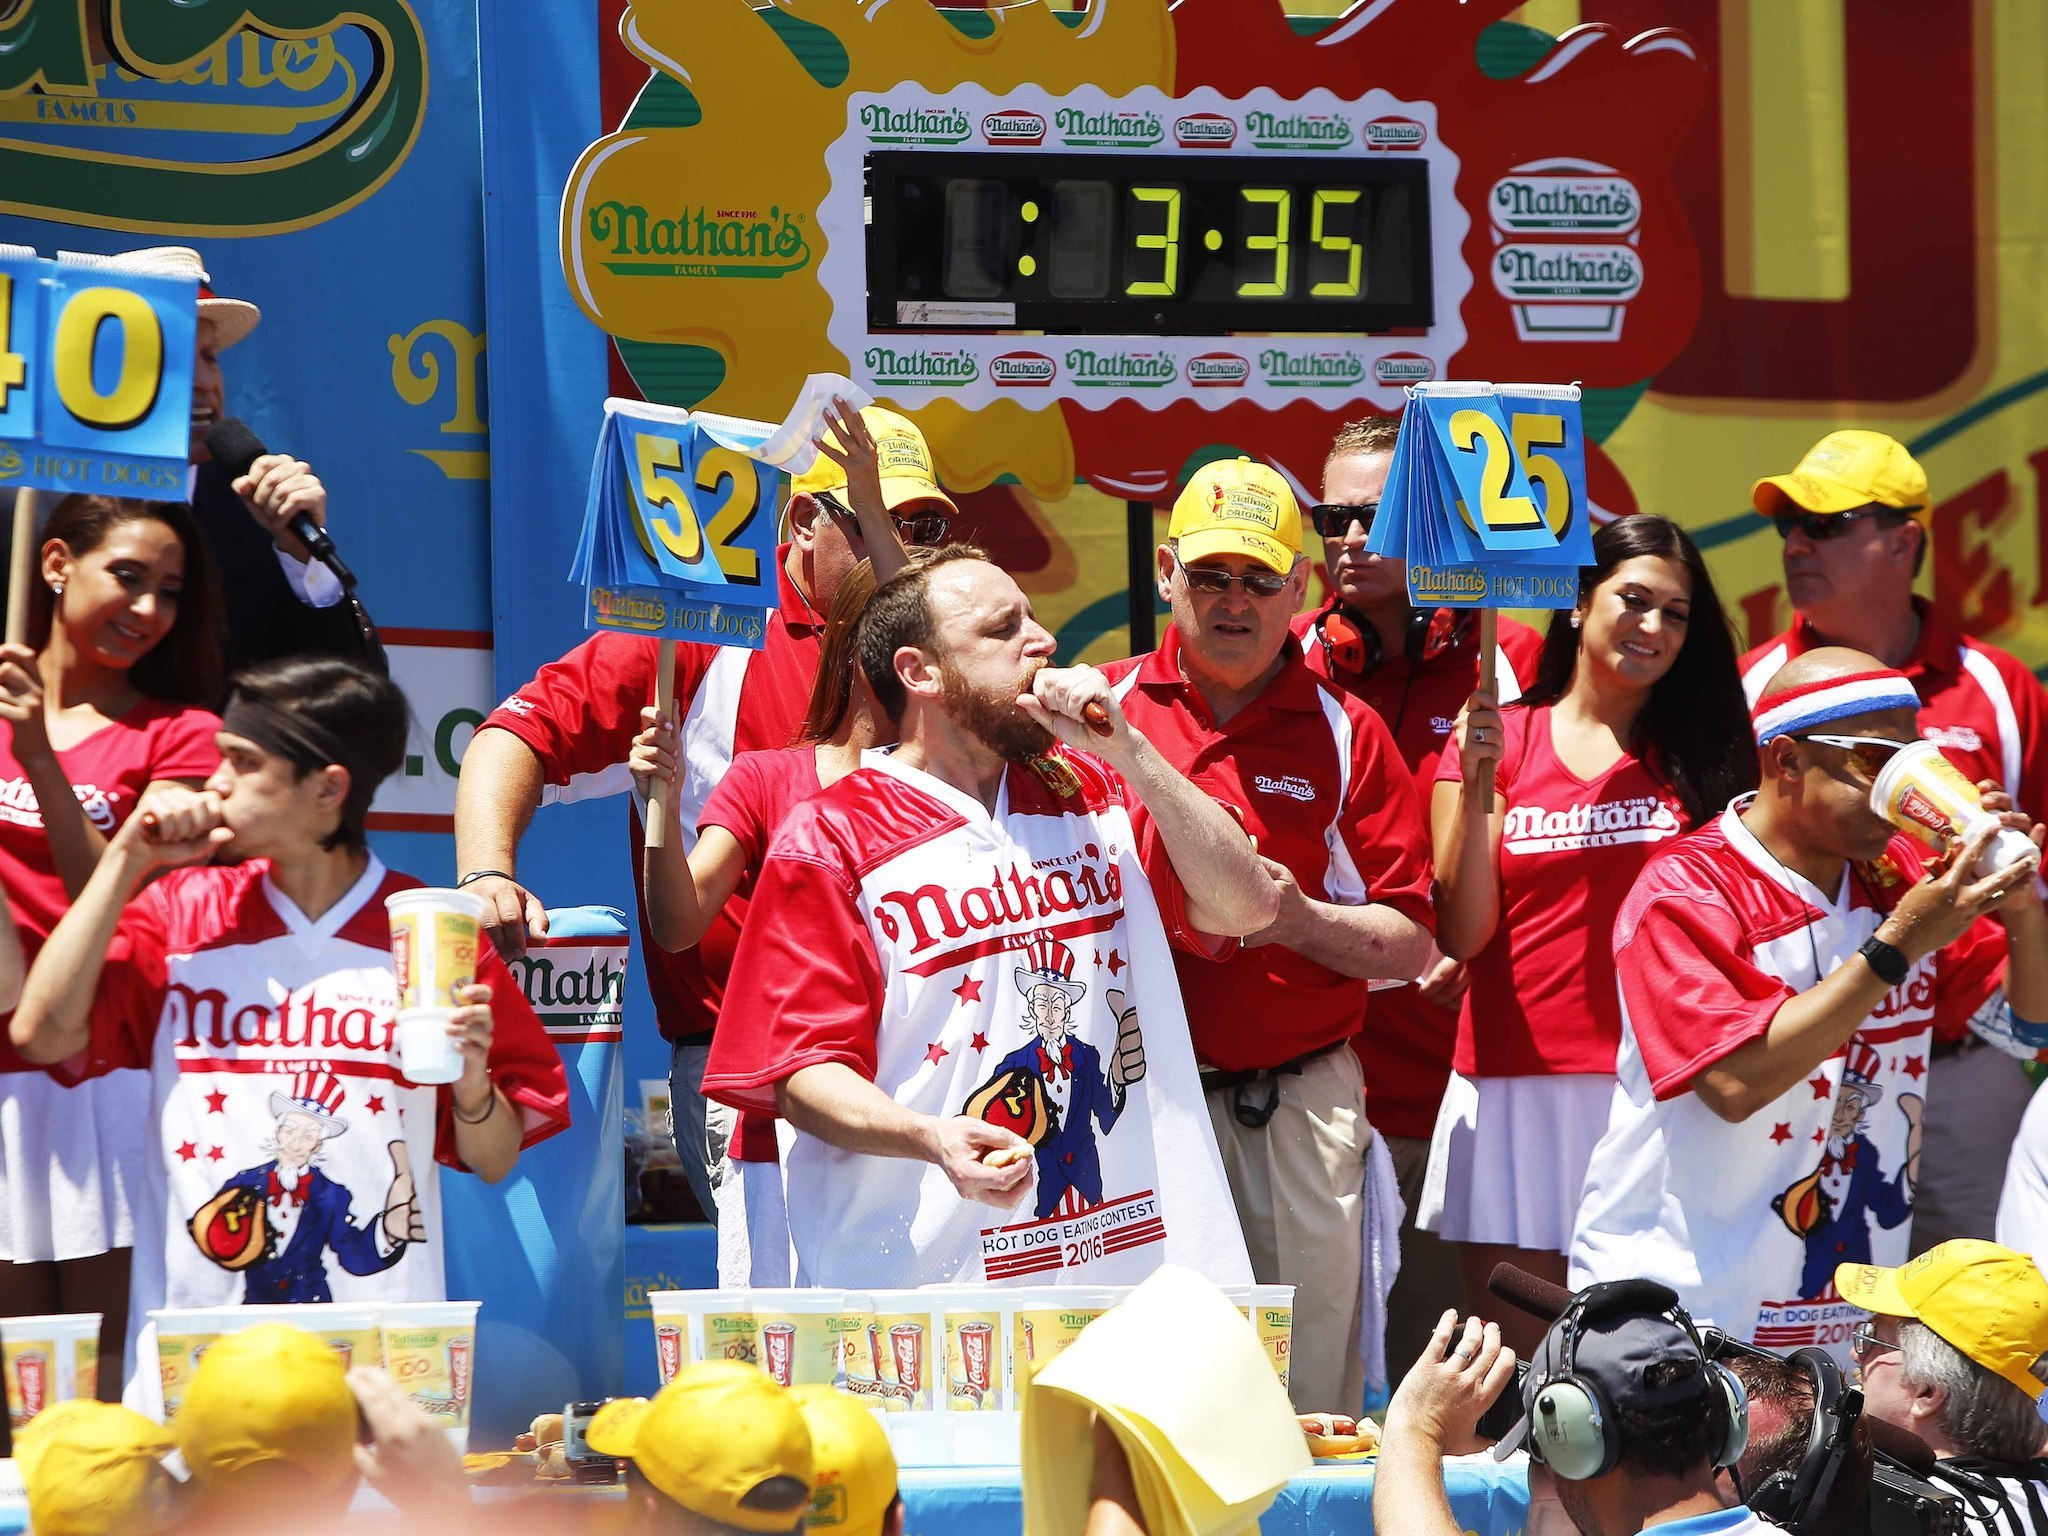 Watch Nathan's hot dog eating contest